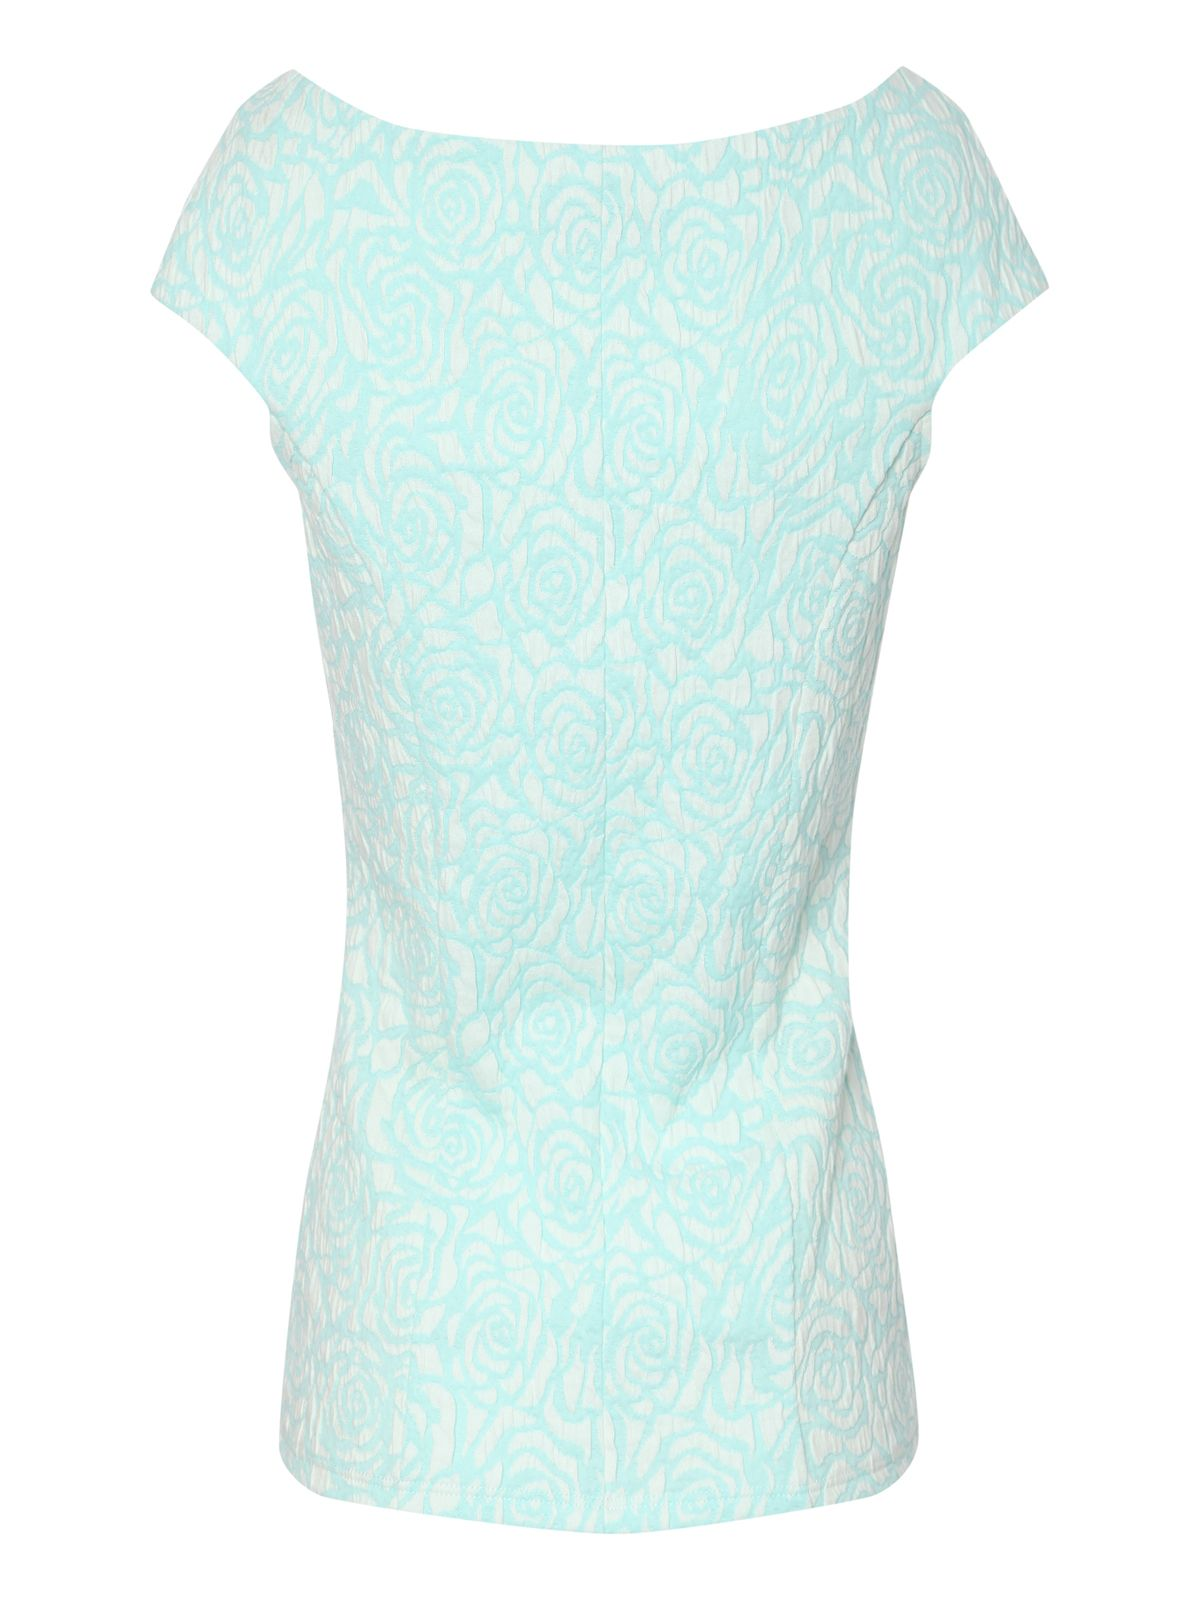 Rose jacquard cap sleeve top